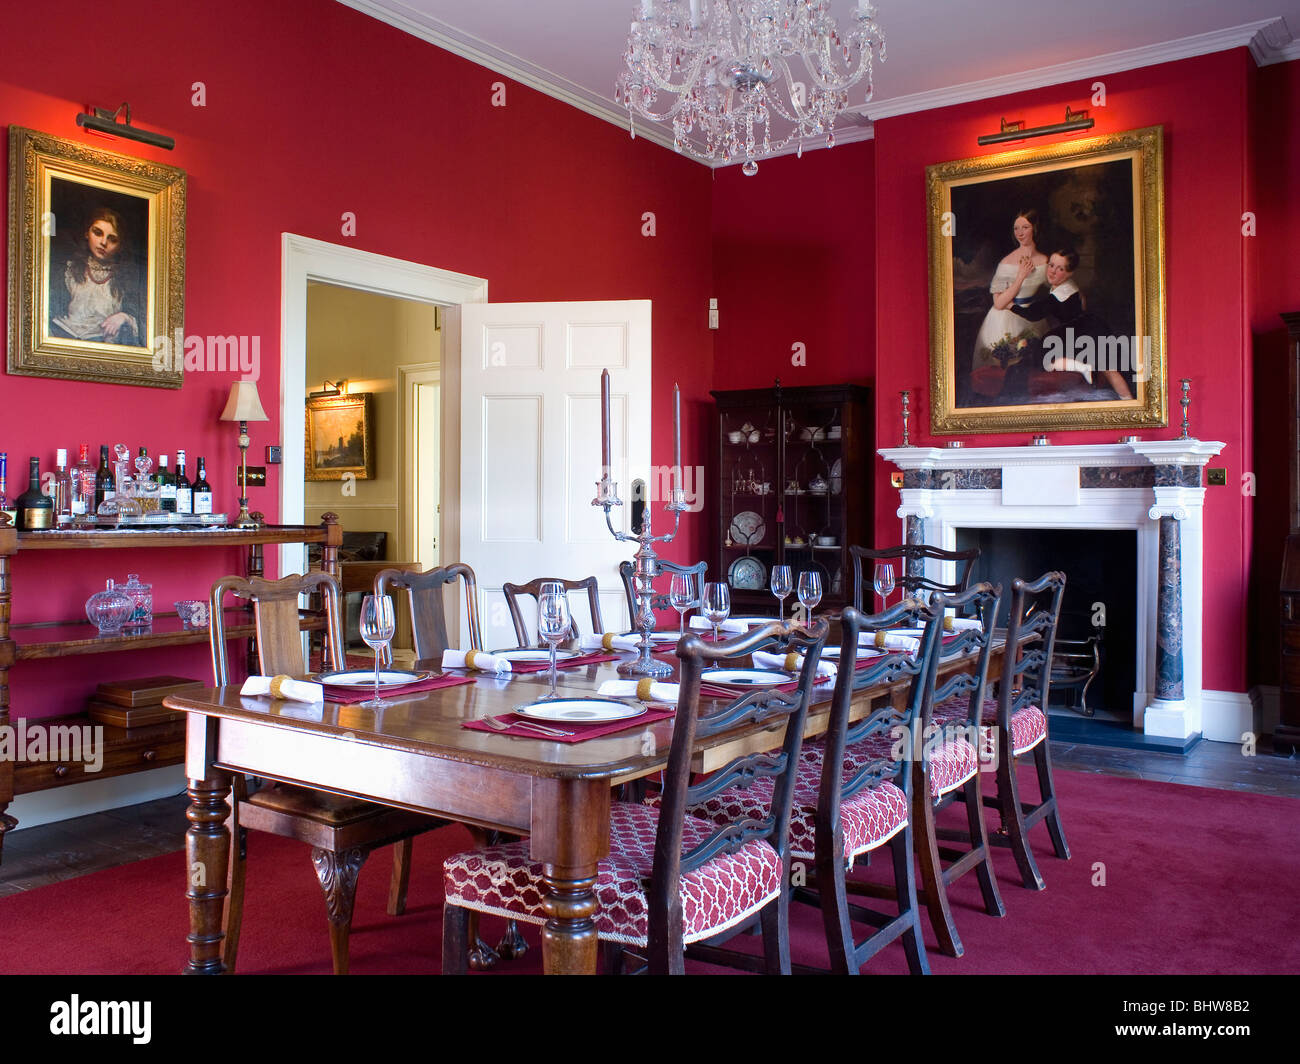 Picture of: Antique Mahogany Table And Chairs In Red Dining Room With Lighting Stock Photo Alamy